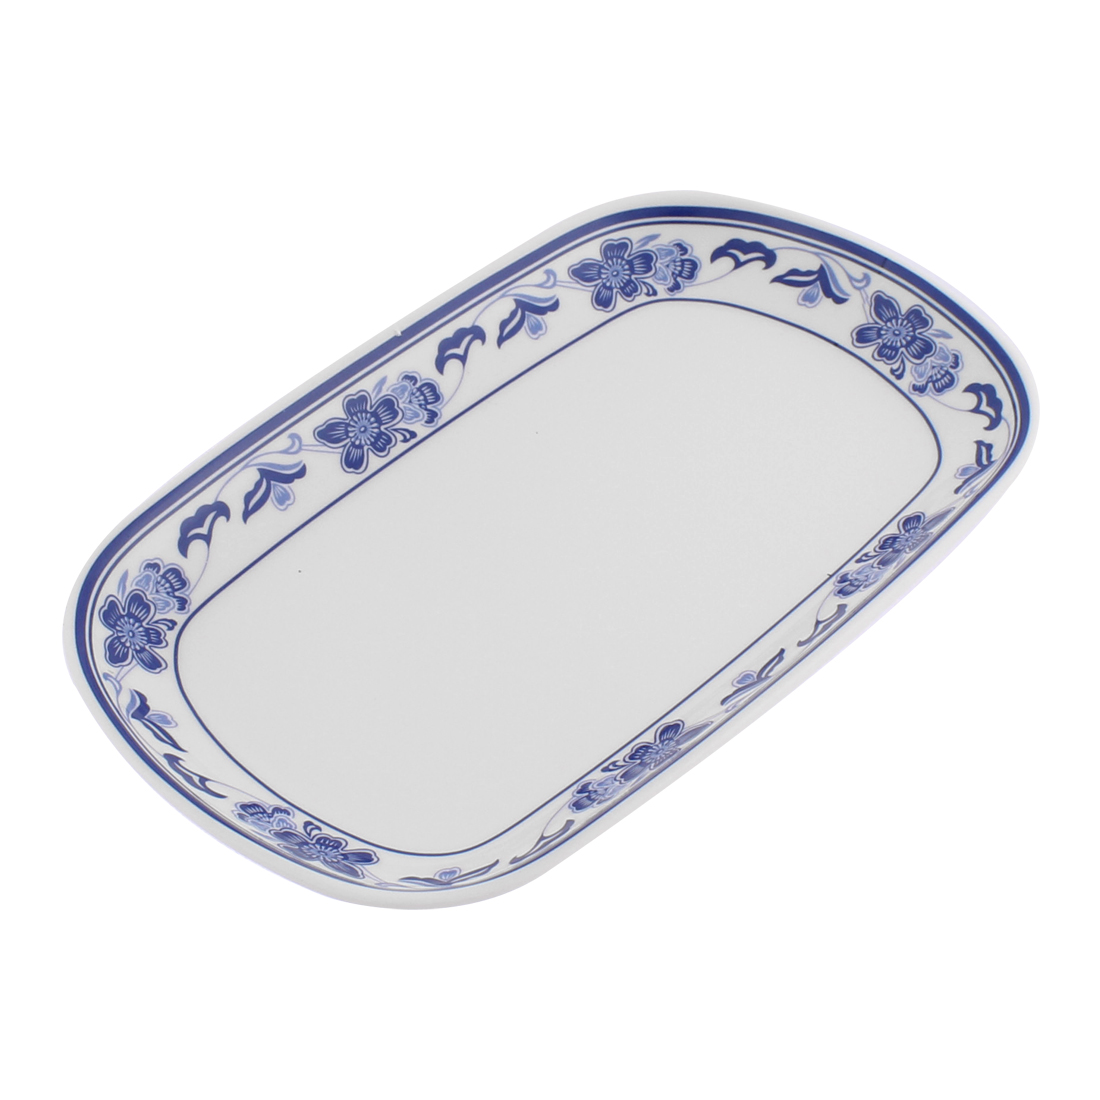 Flower Printed Edge Rectangle Shaped Food Dish Plate White Blue 21.5x14cm